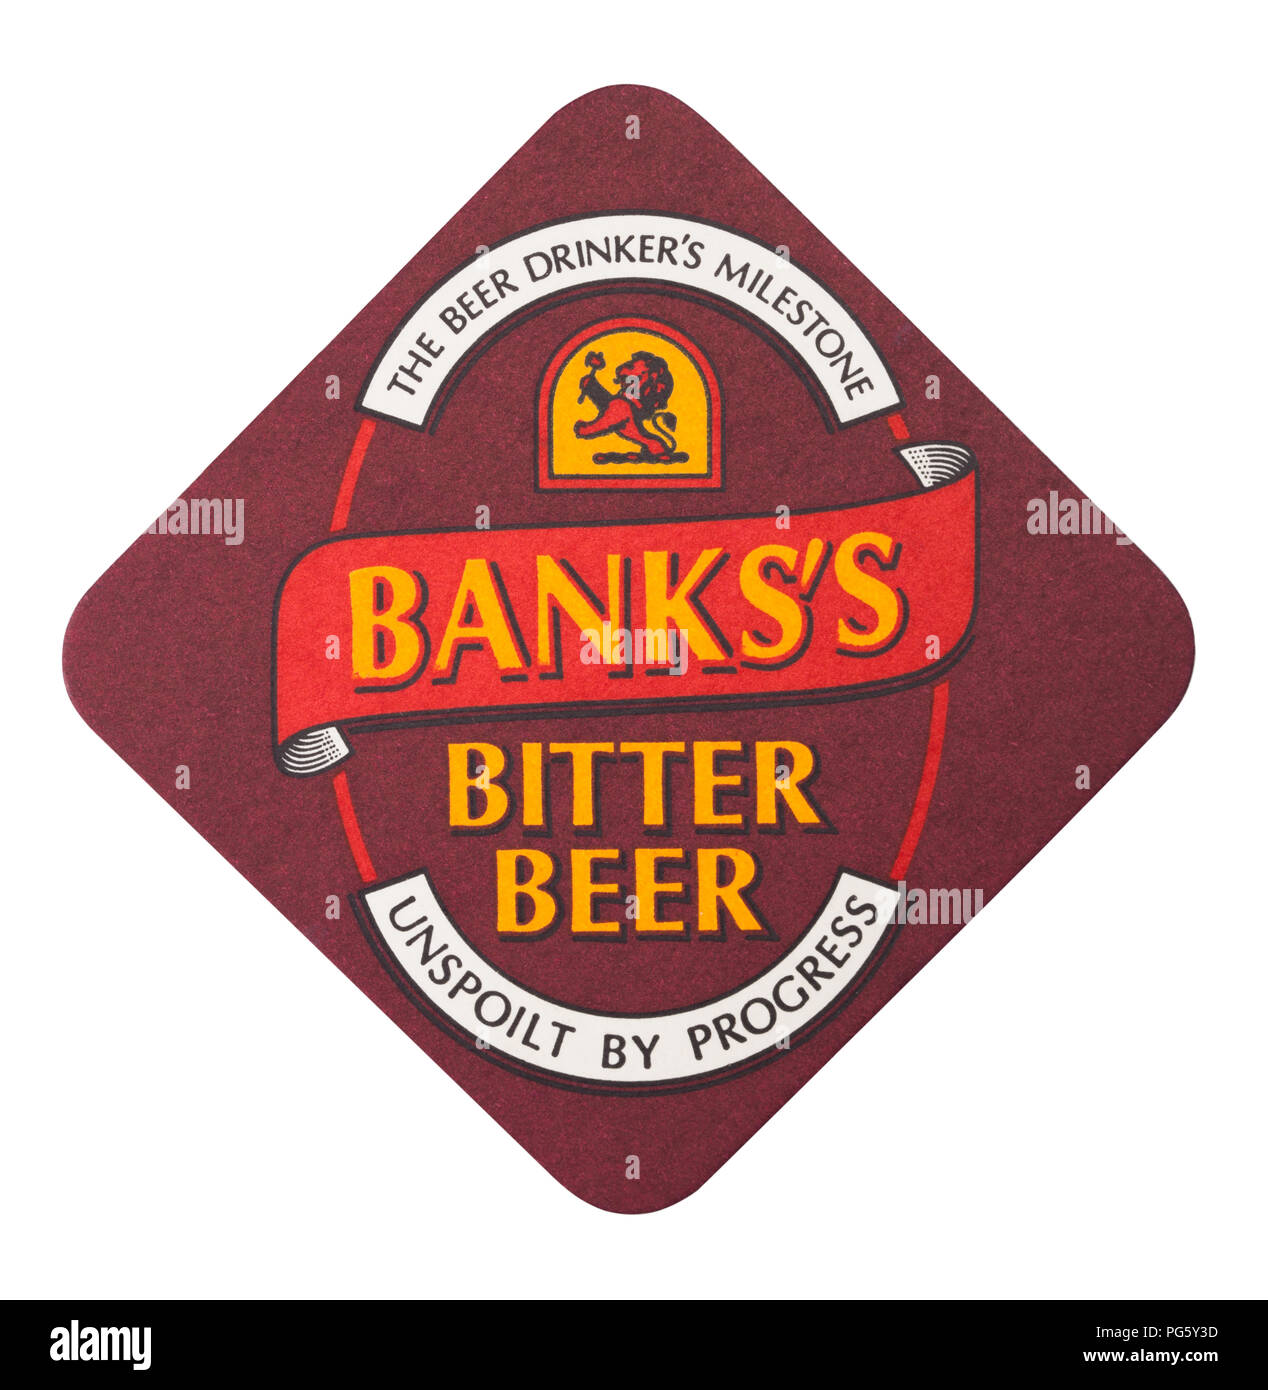 LONDON, UK - AUGUST 22, 2018: Banks's Bitter paper beer beermat coaster isolated on white background. - Stock Image